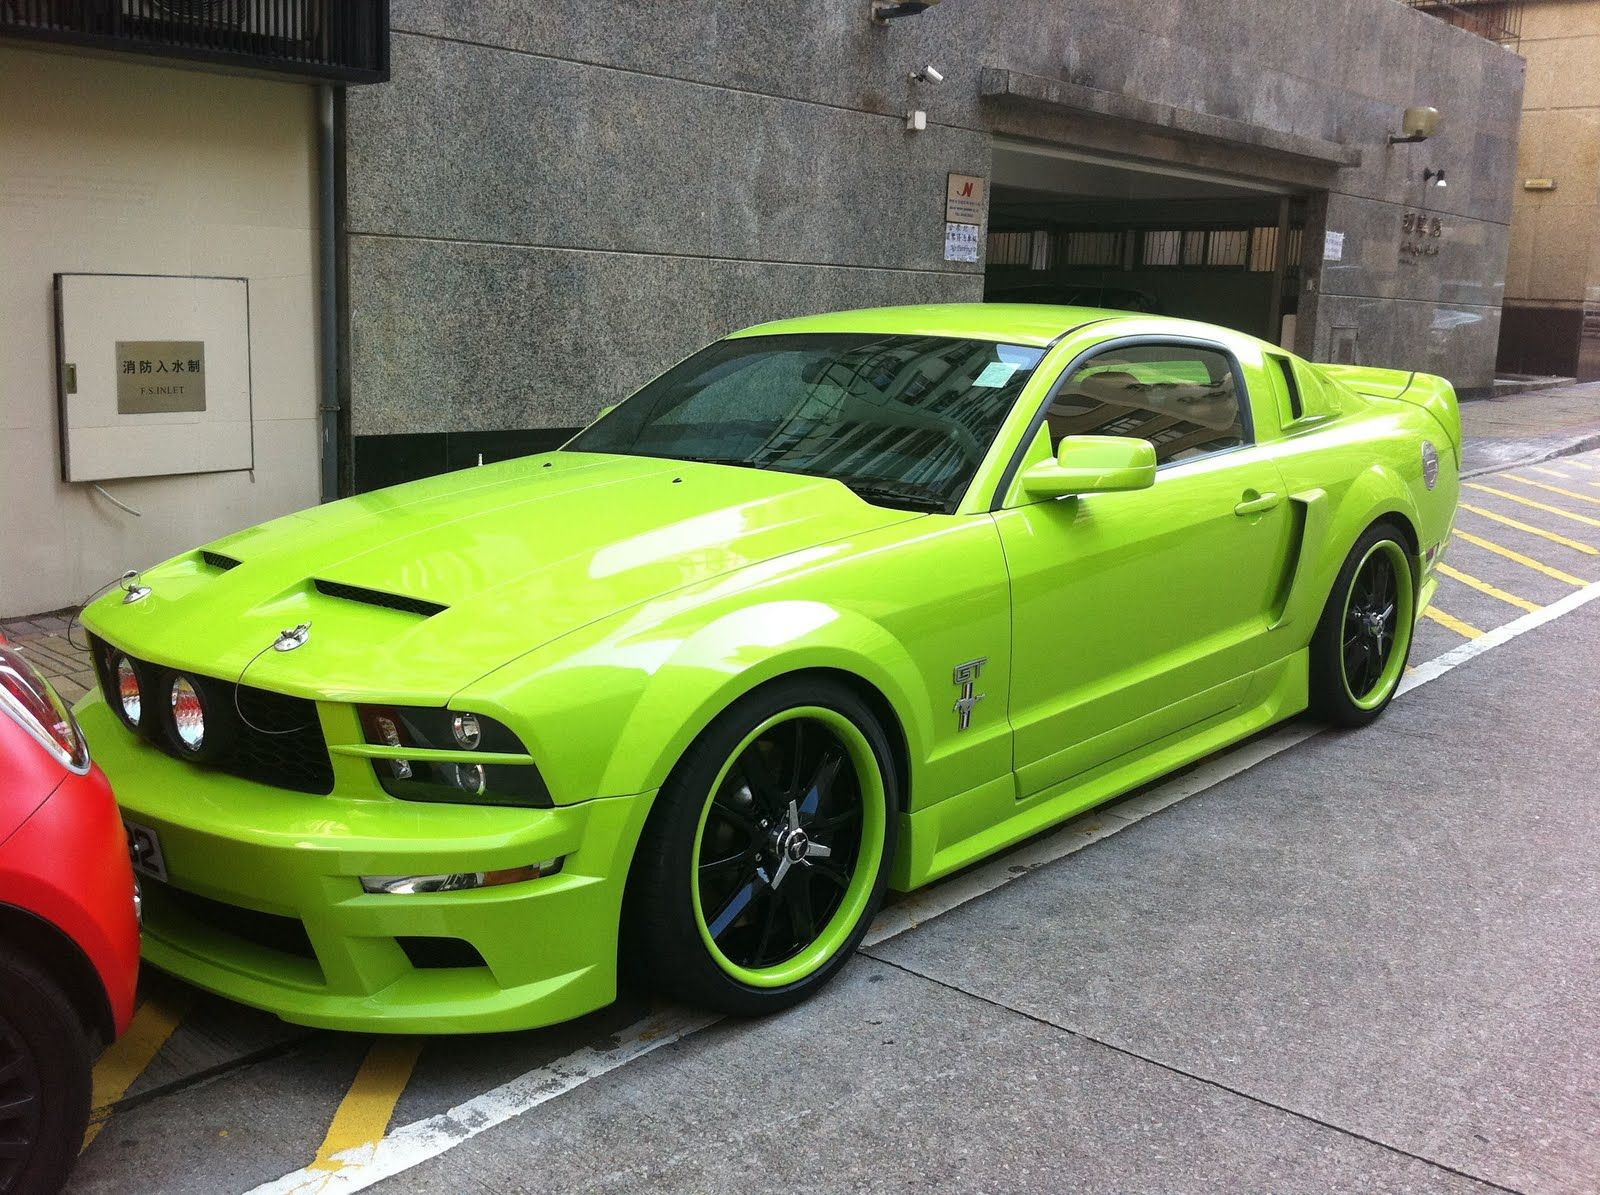 Neon green mustang cars i want ford mustang shelby mustang cars